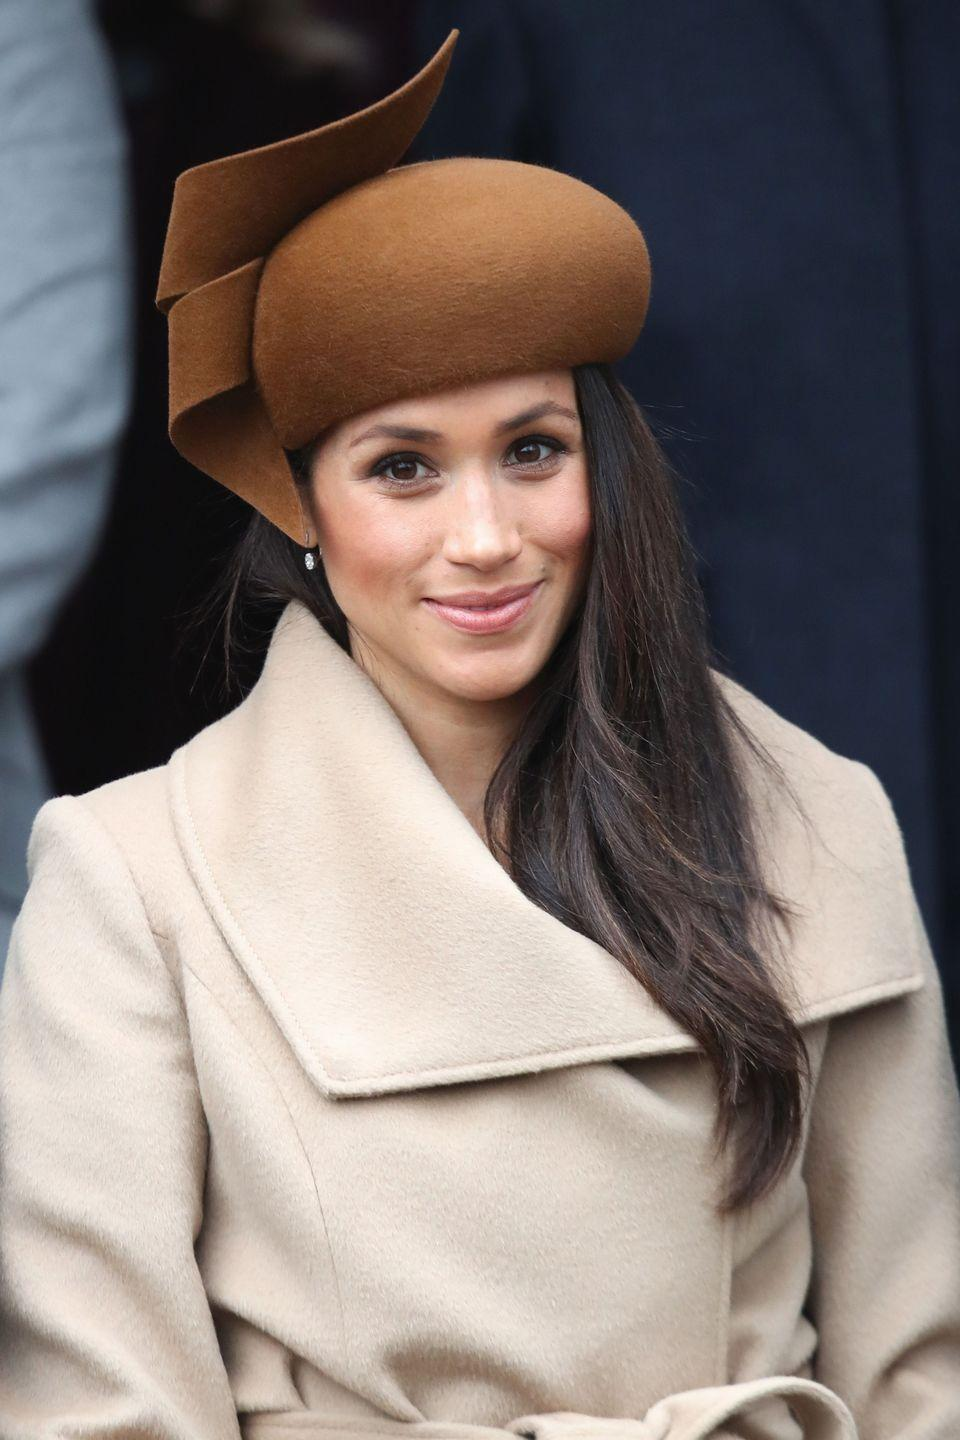 <p>Instead of soft waves, Markle is now favoring a straighter hairstyle that still has plenty of body and movement. The face-framing pieces are slightly curled away from the face, but only at the very ends.</p>